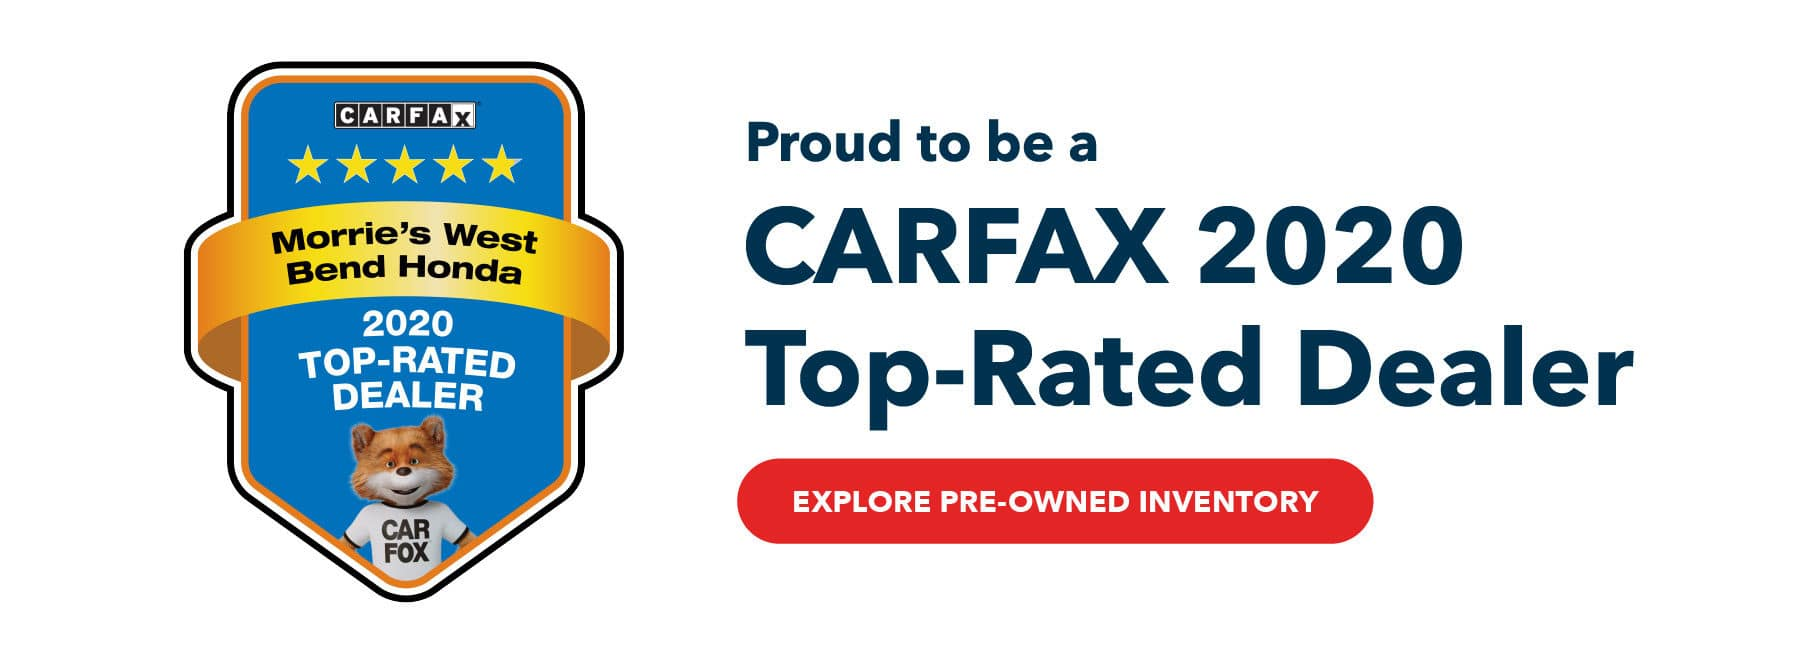 Proud to be a CarFax 2020 Top-Rated Dealer